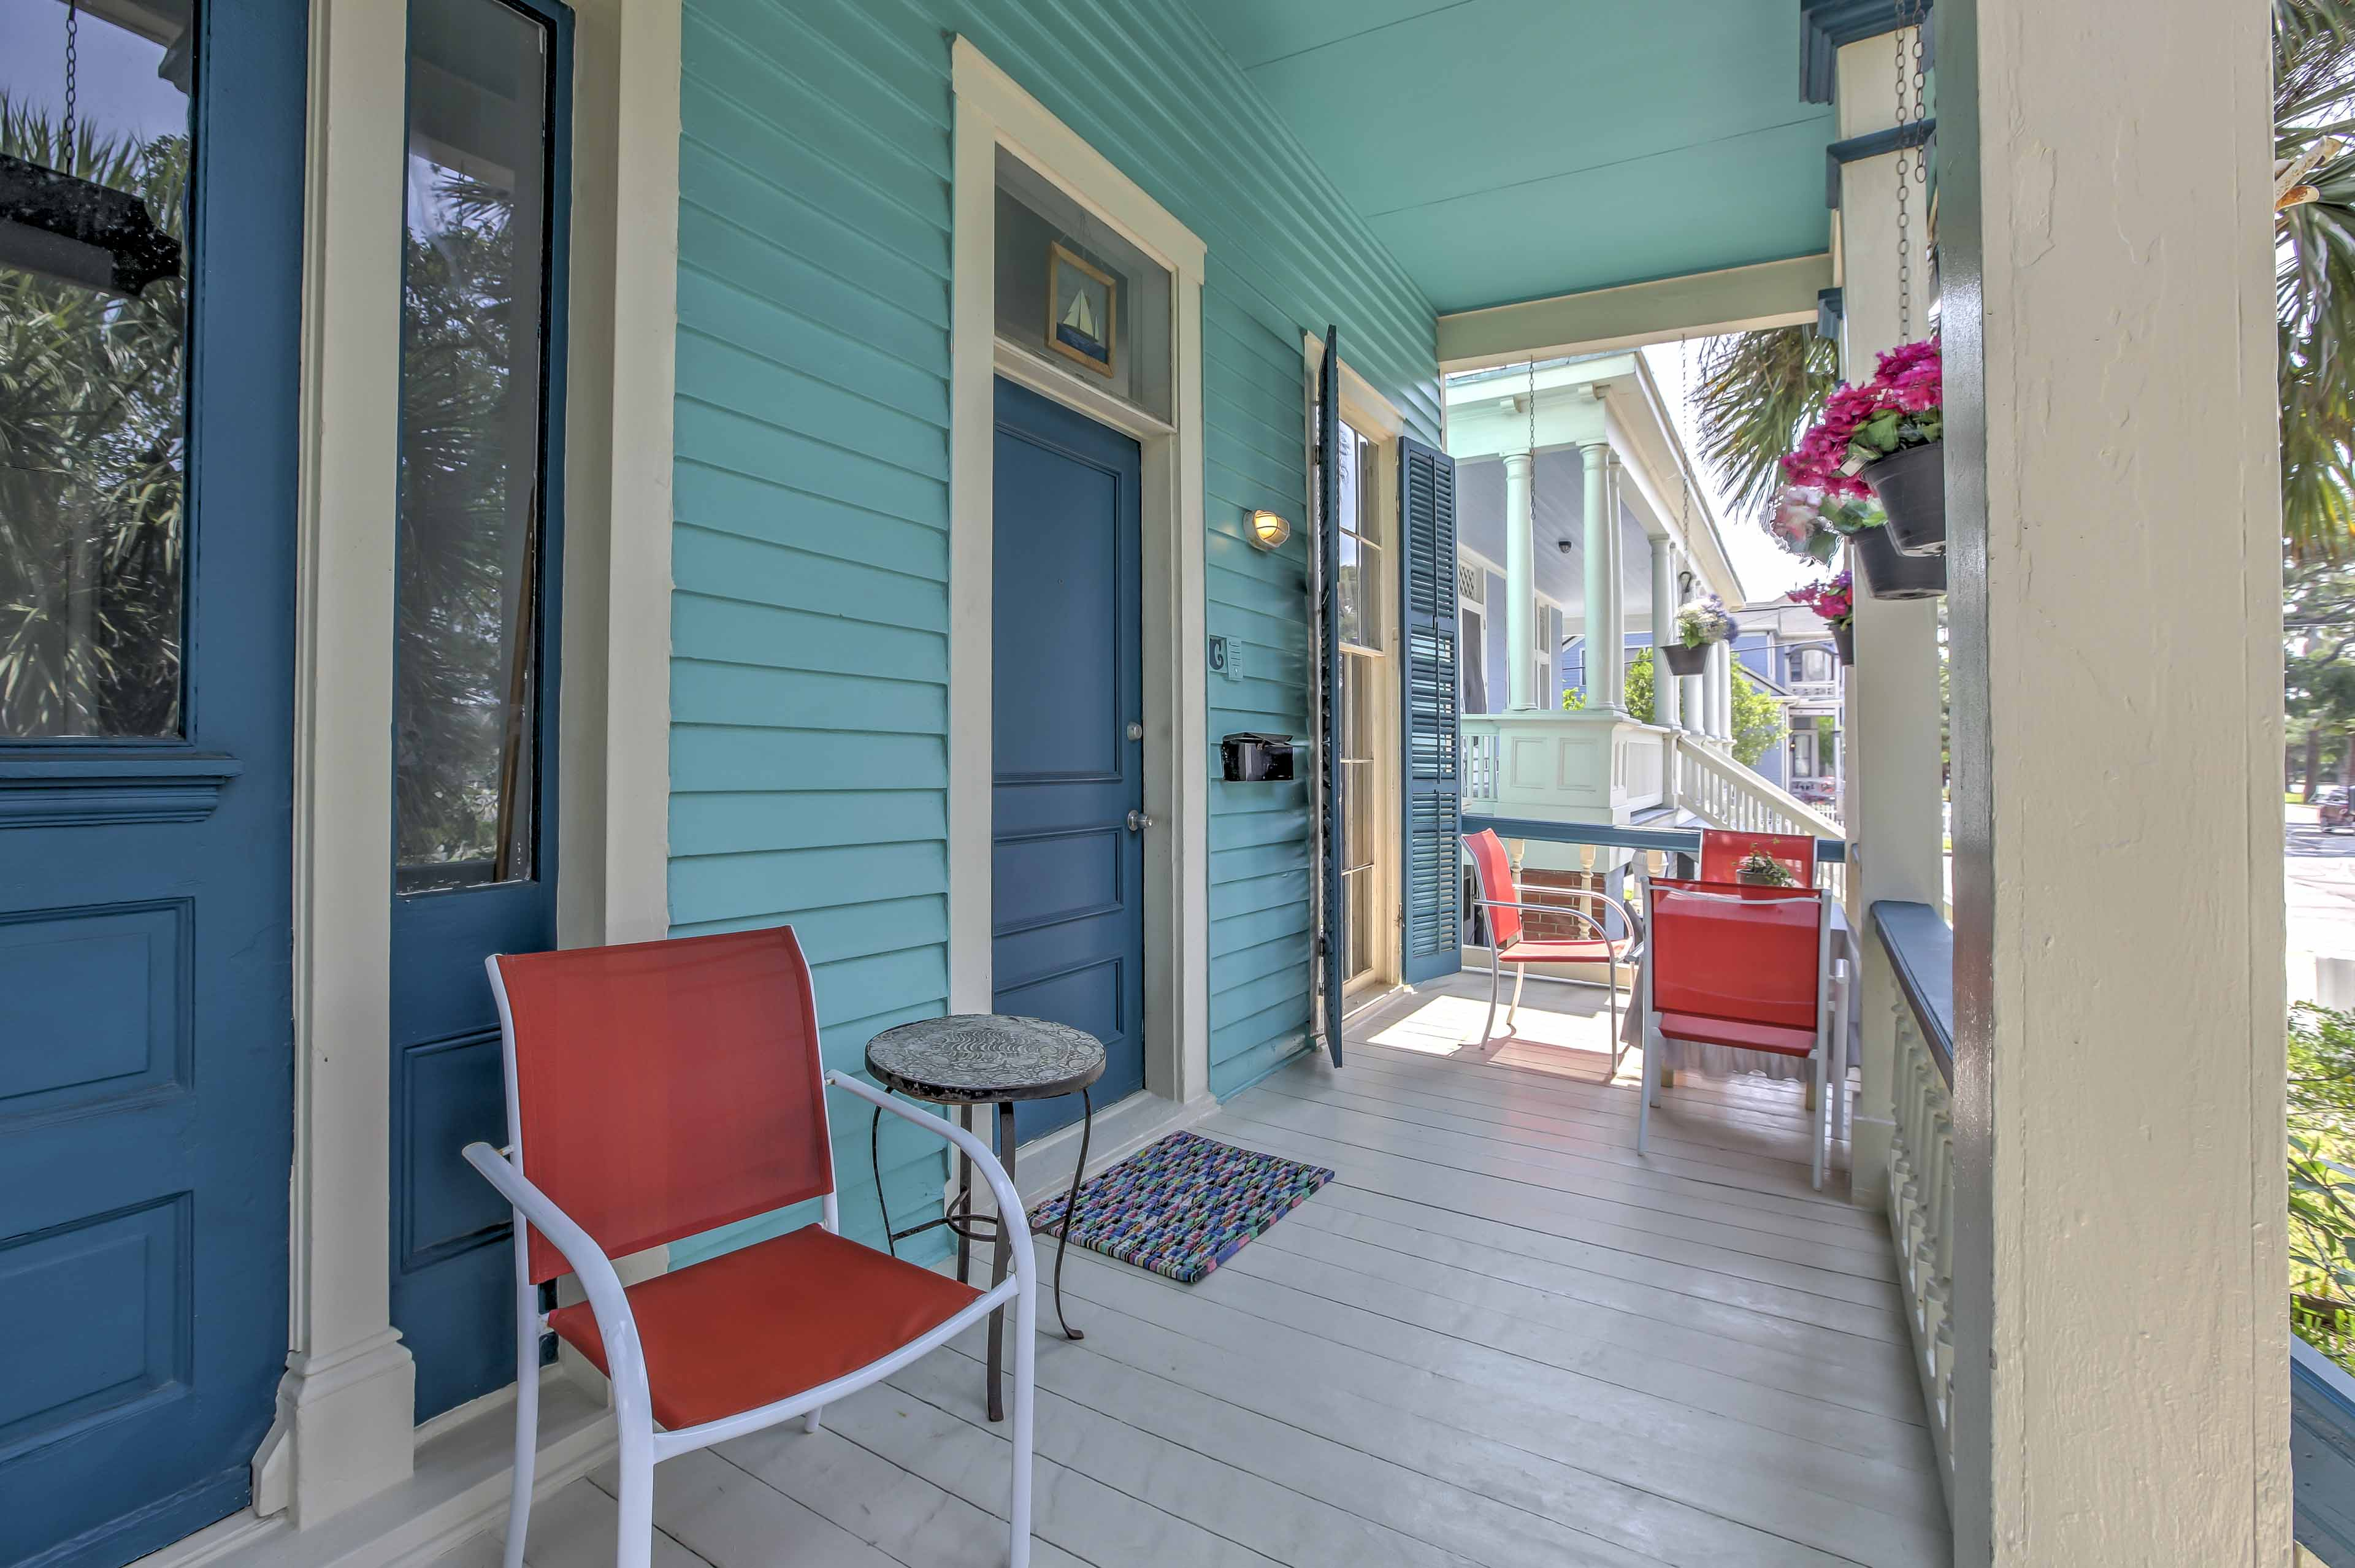 Soak up the weather on the front porch.